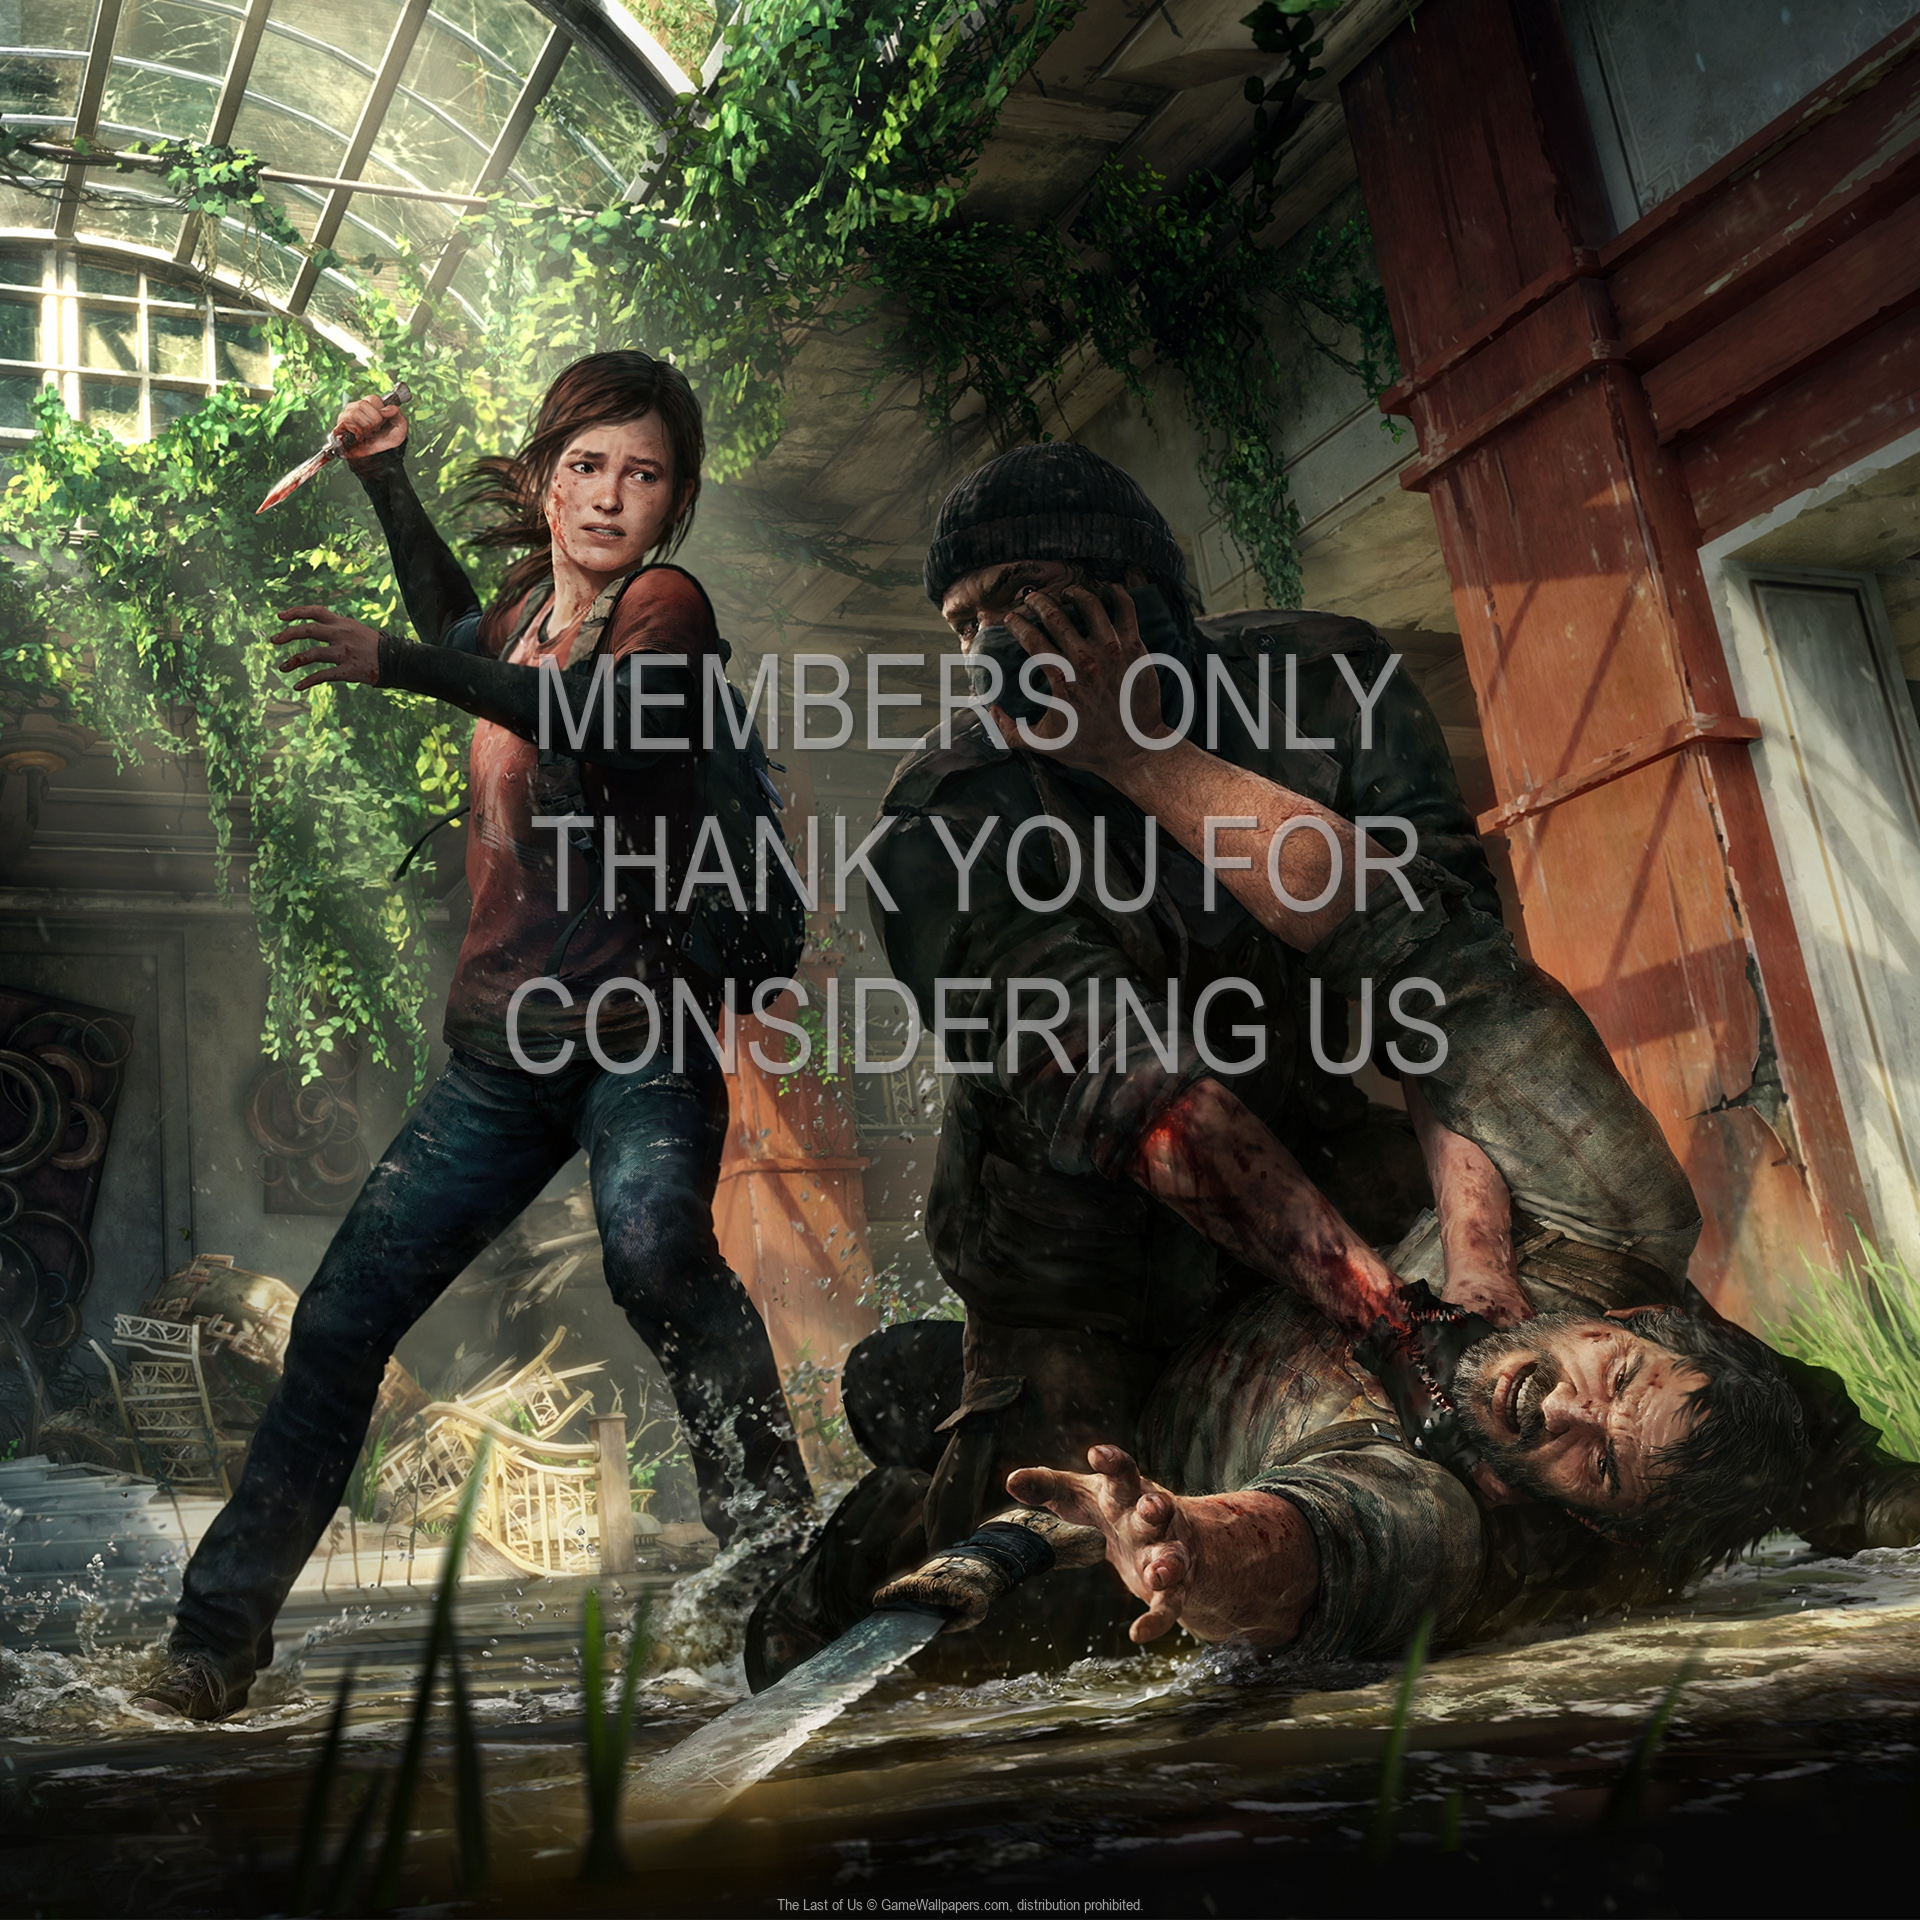 The Last of Us 1920x1080 Mobile wallpaper or background 13